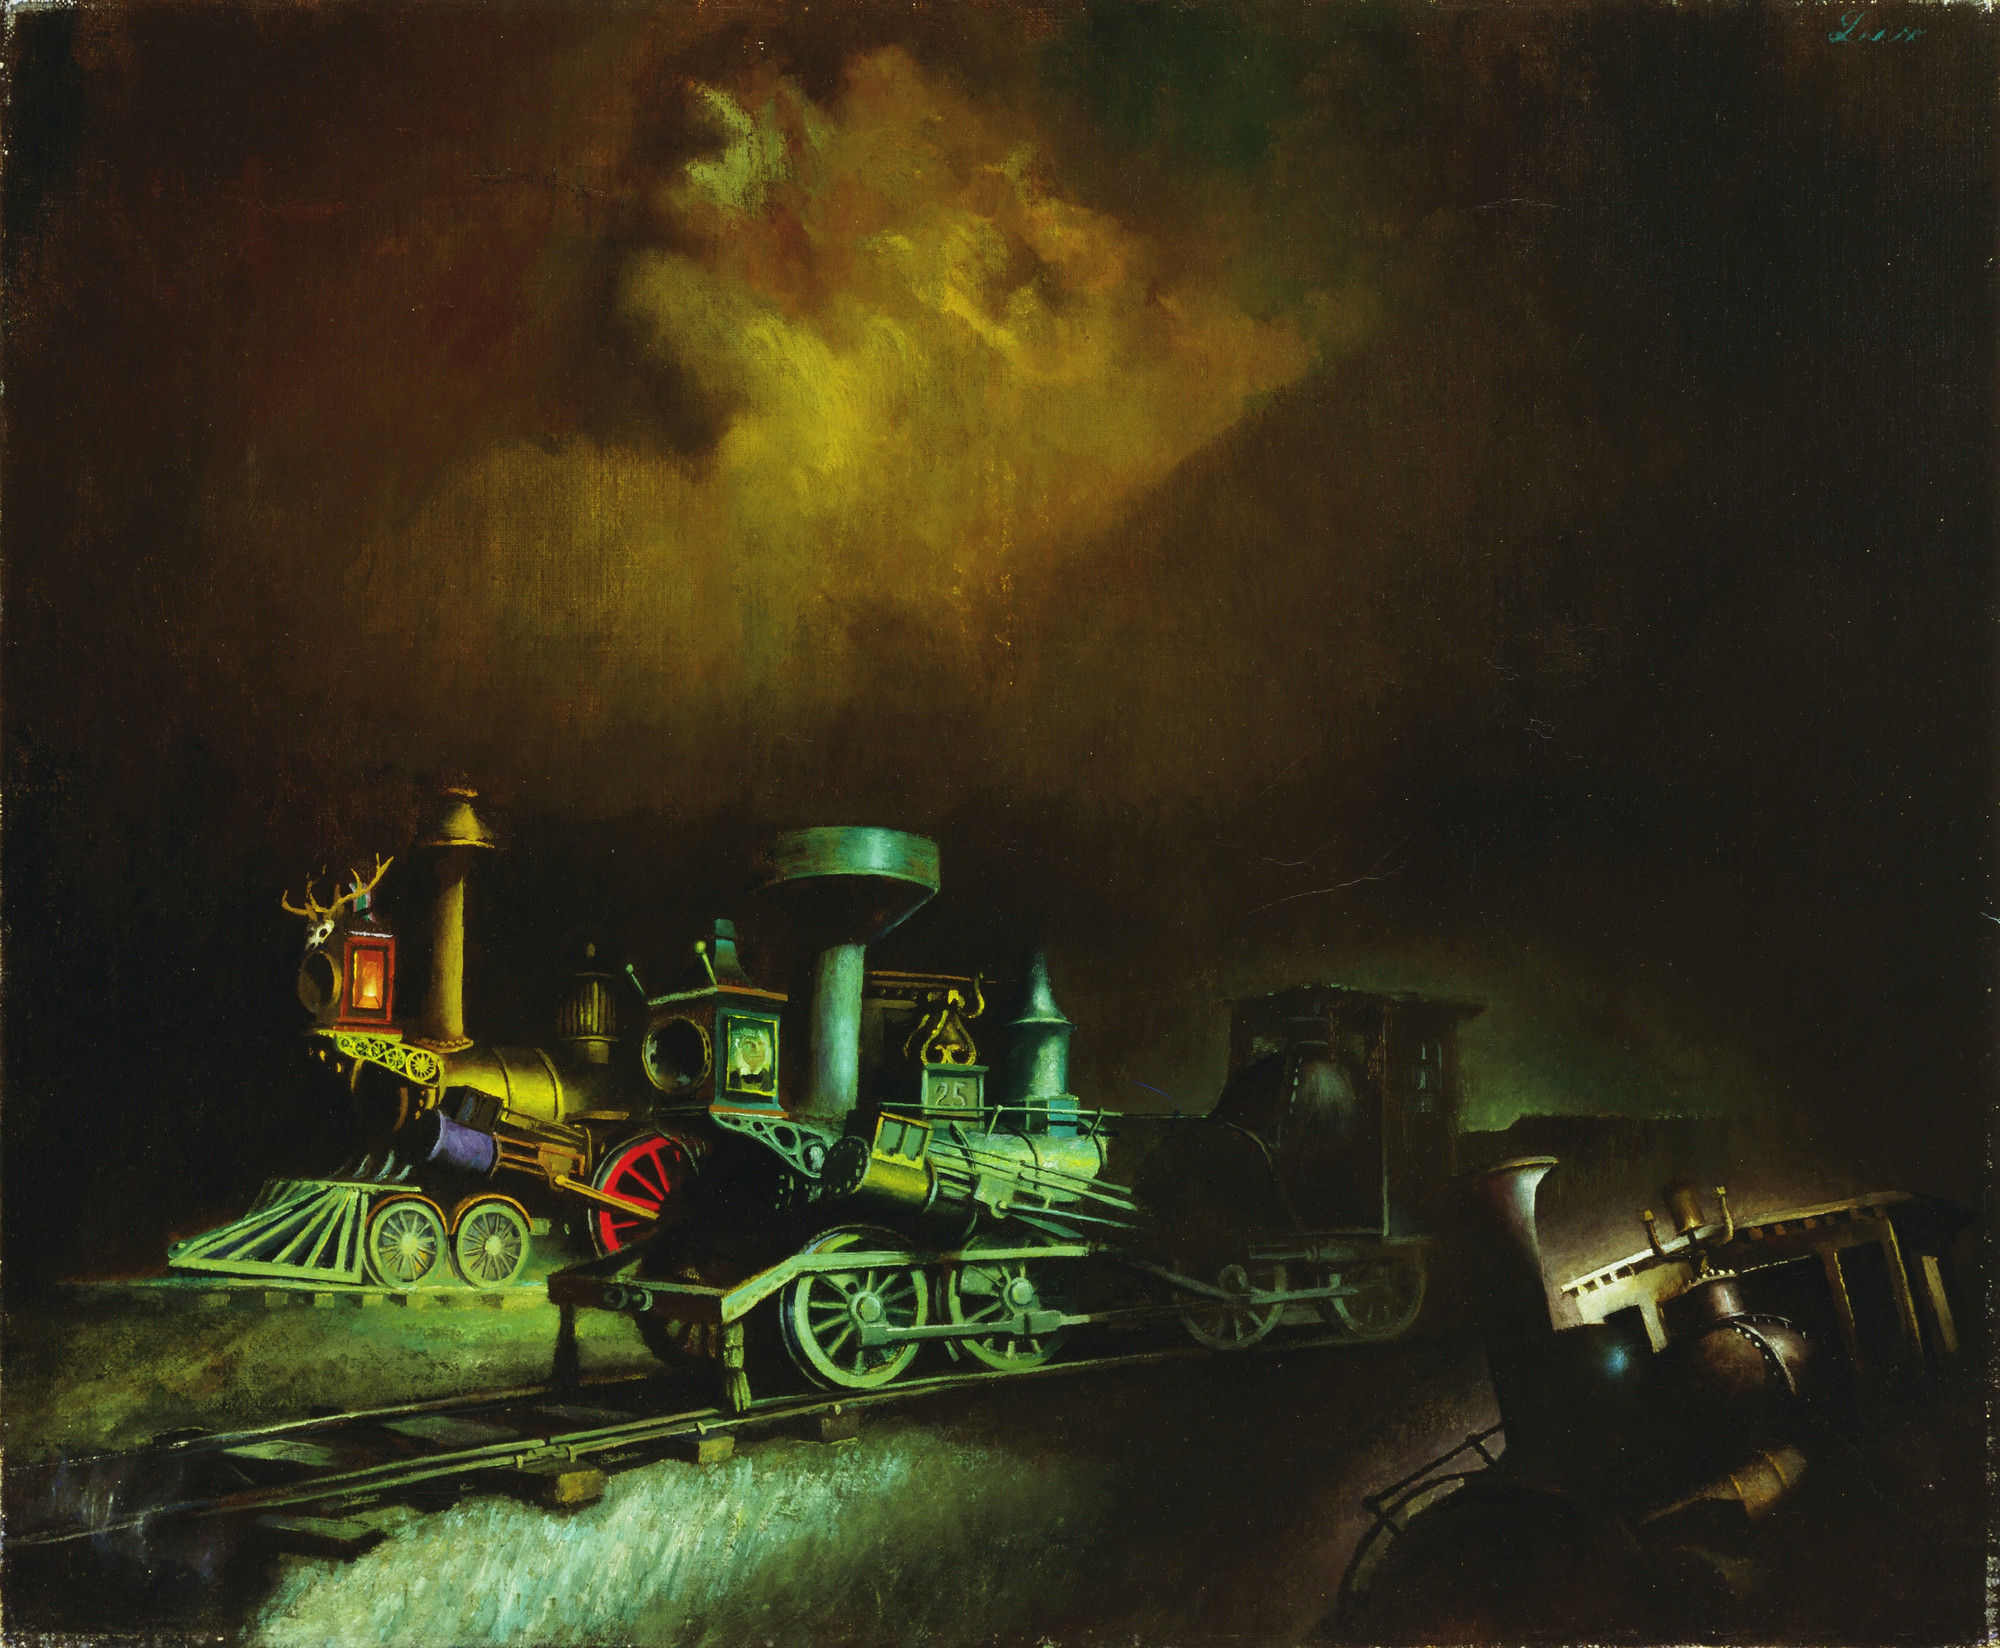 Theodore Lux Feininger. Ghosts of Engines. 1946